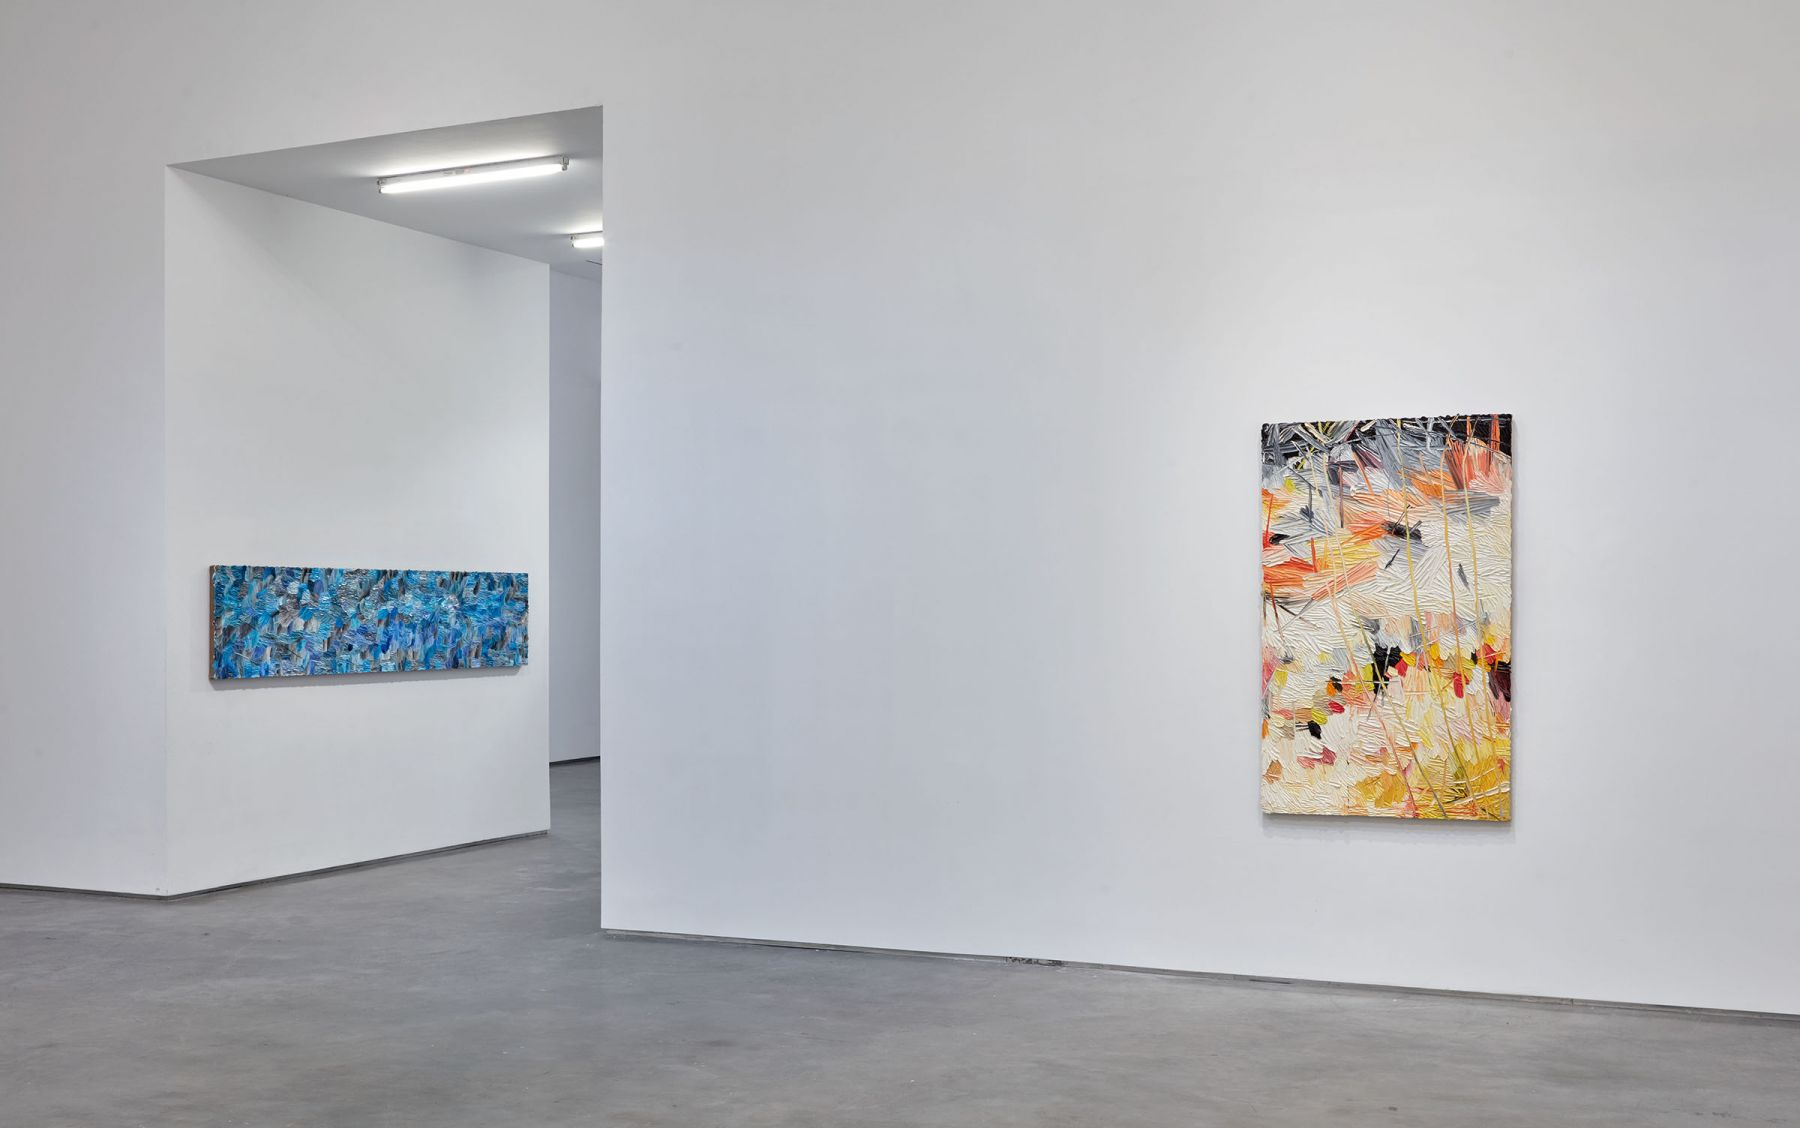 Installation View, whatever, a vibrant holiday, October 27 – December 17, 2016